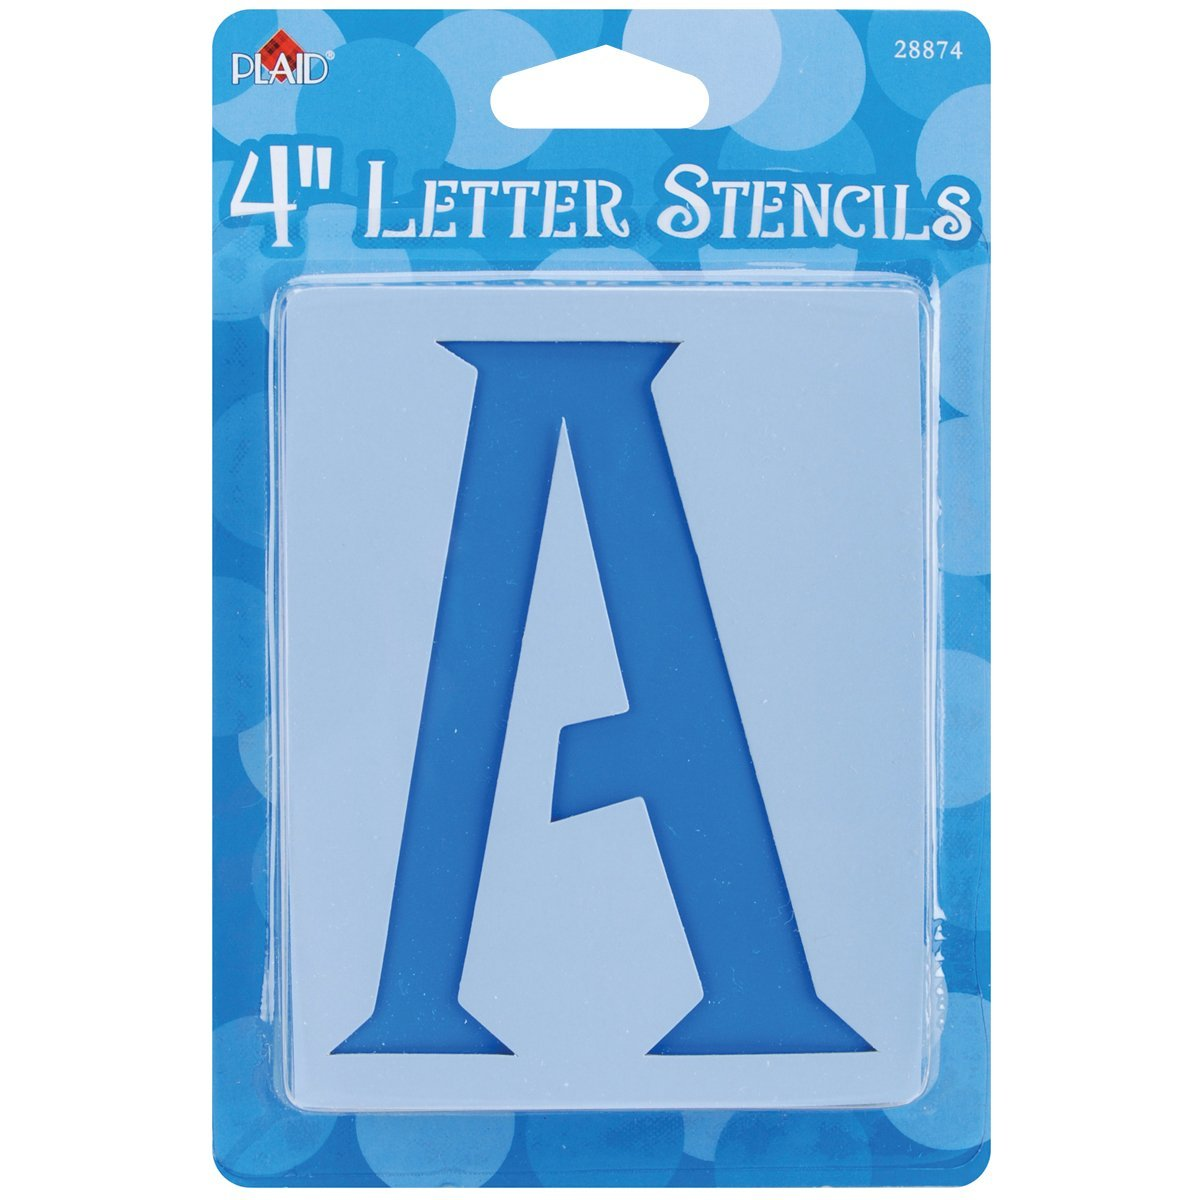 Plaid ® Stencils - Value Packs - Letter Stencils - Genie, 4